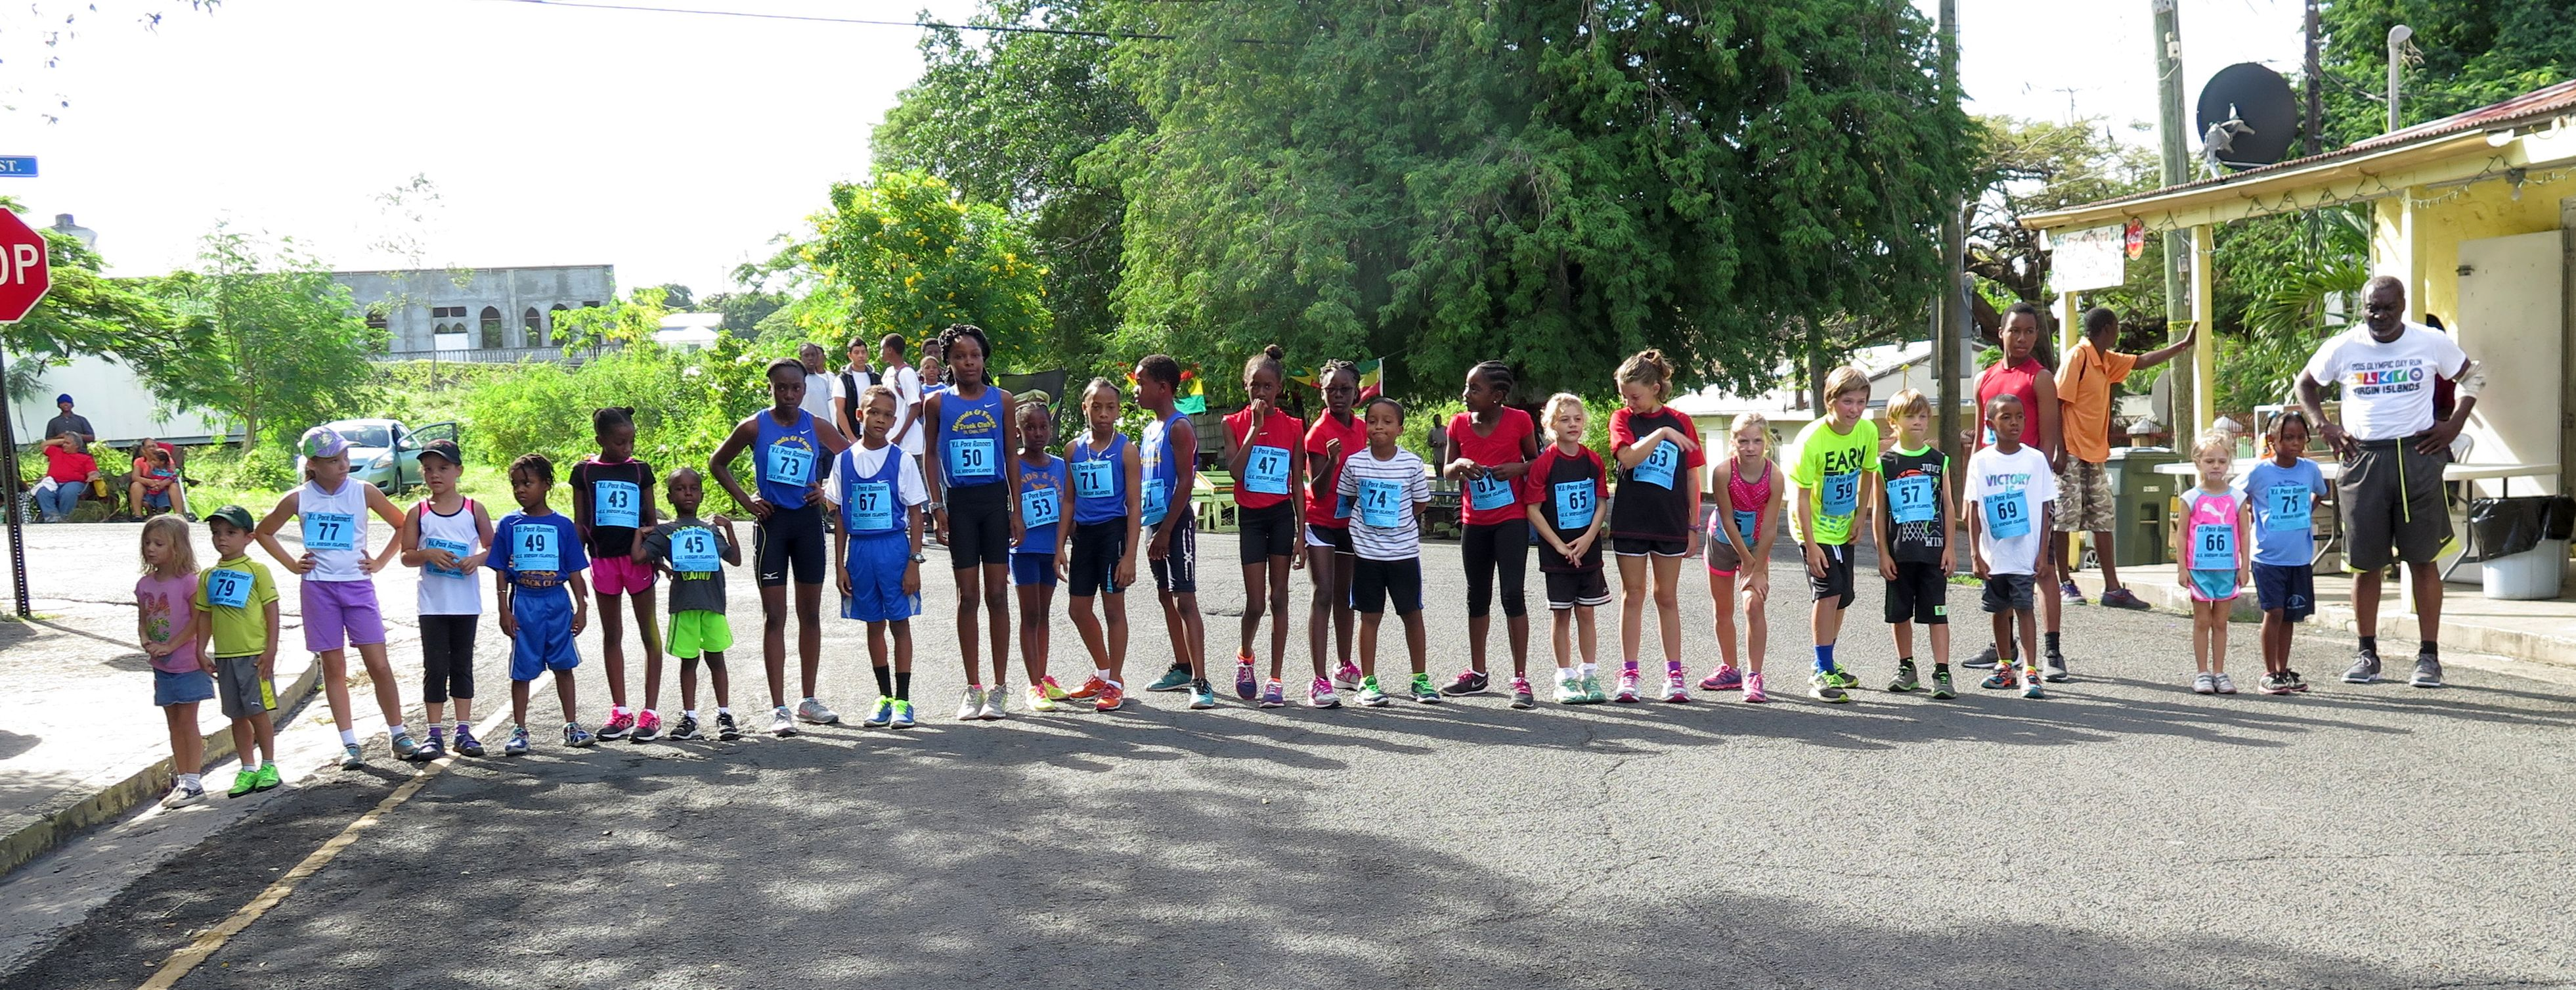 Children Race runners line up at starting line.